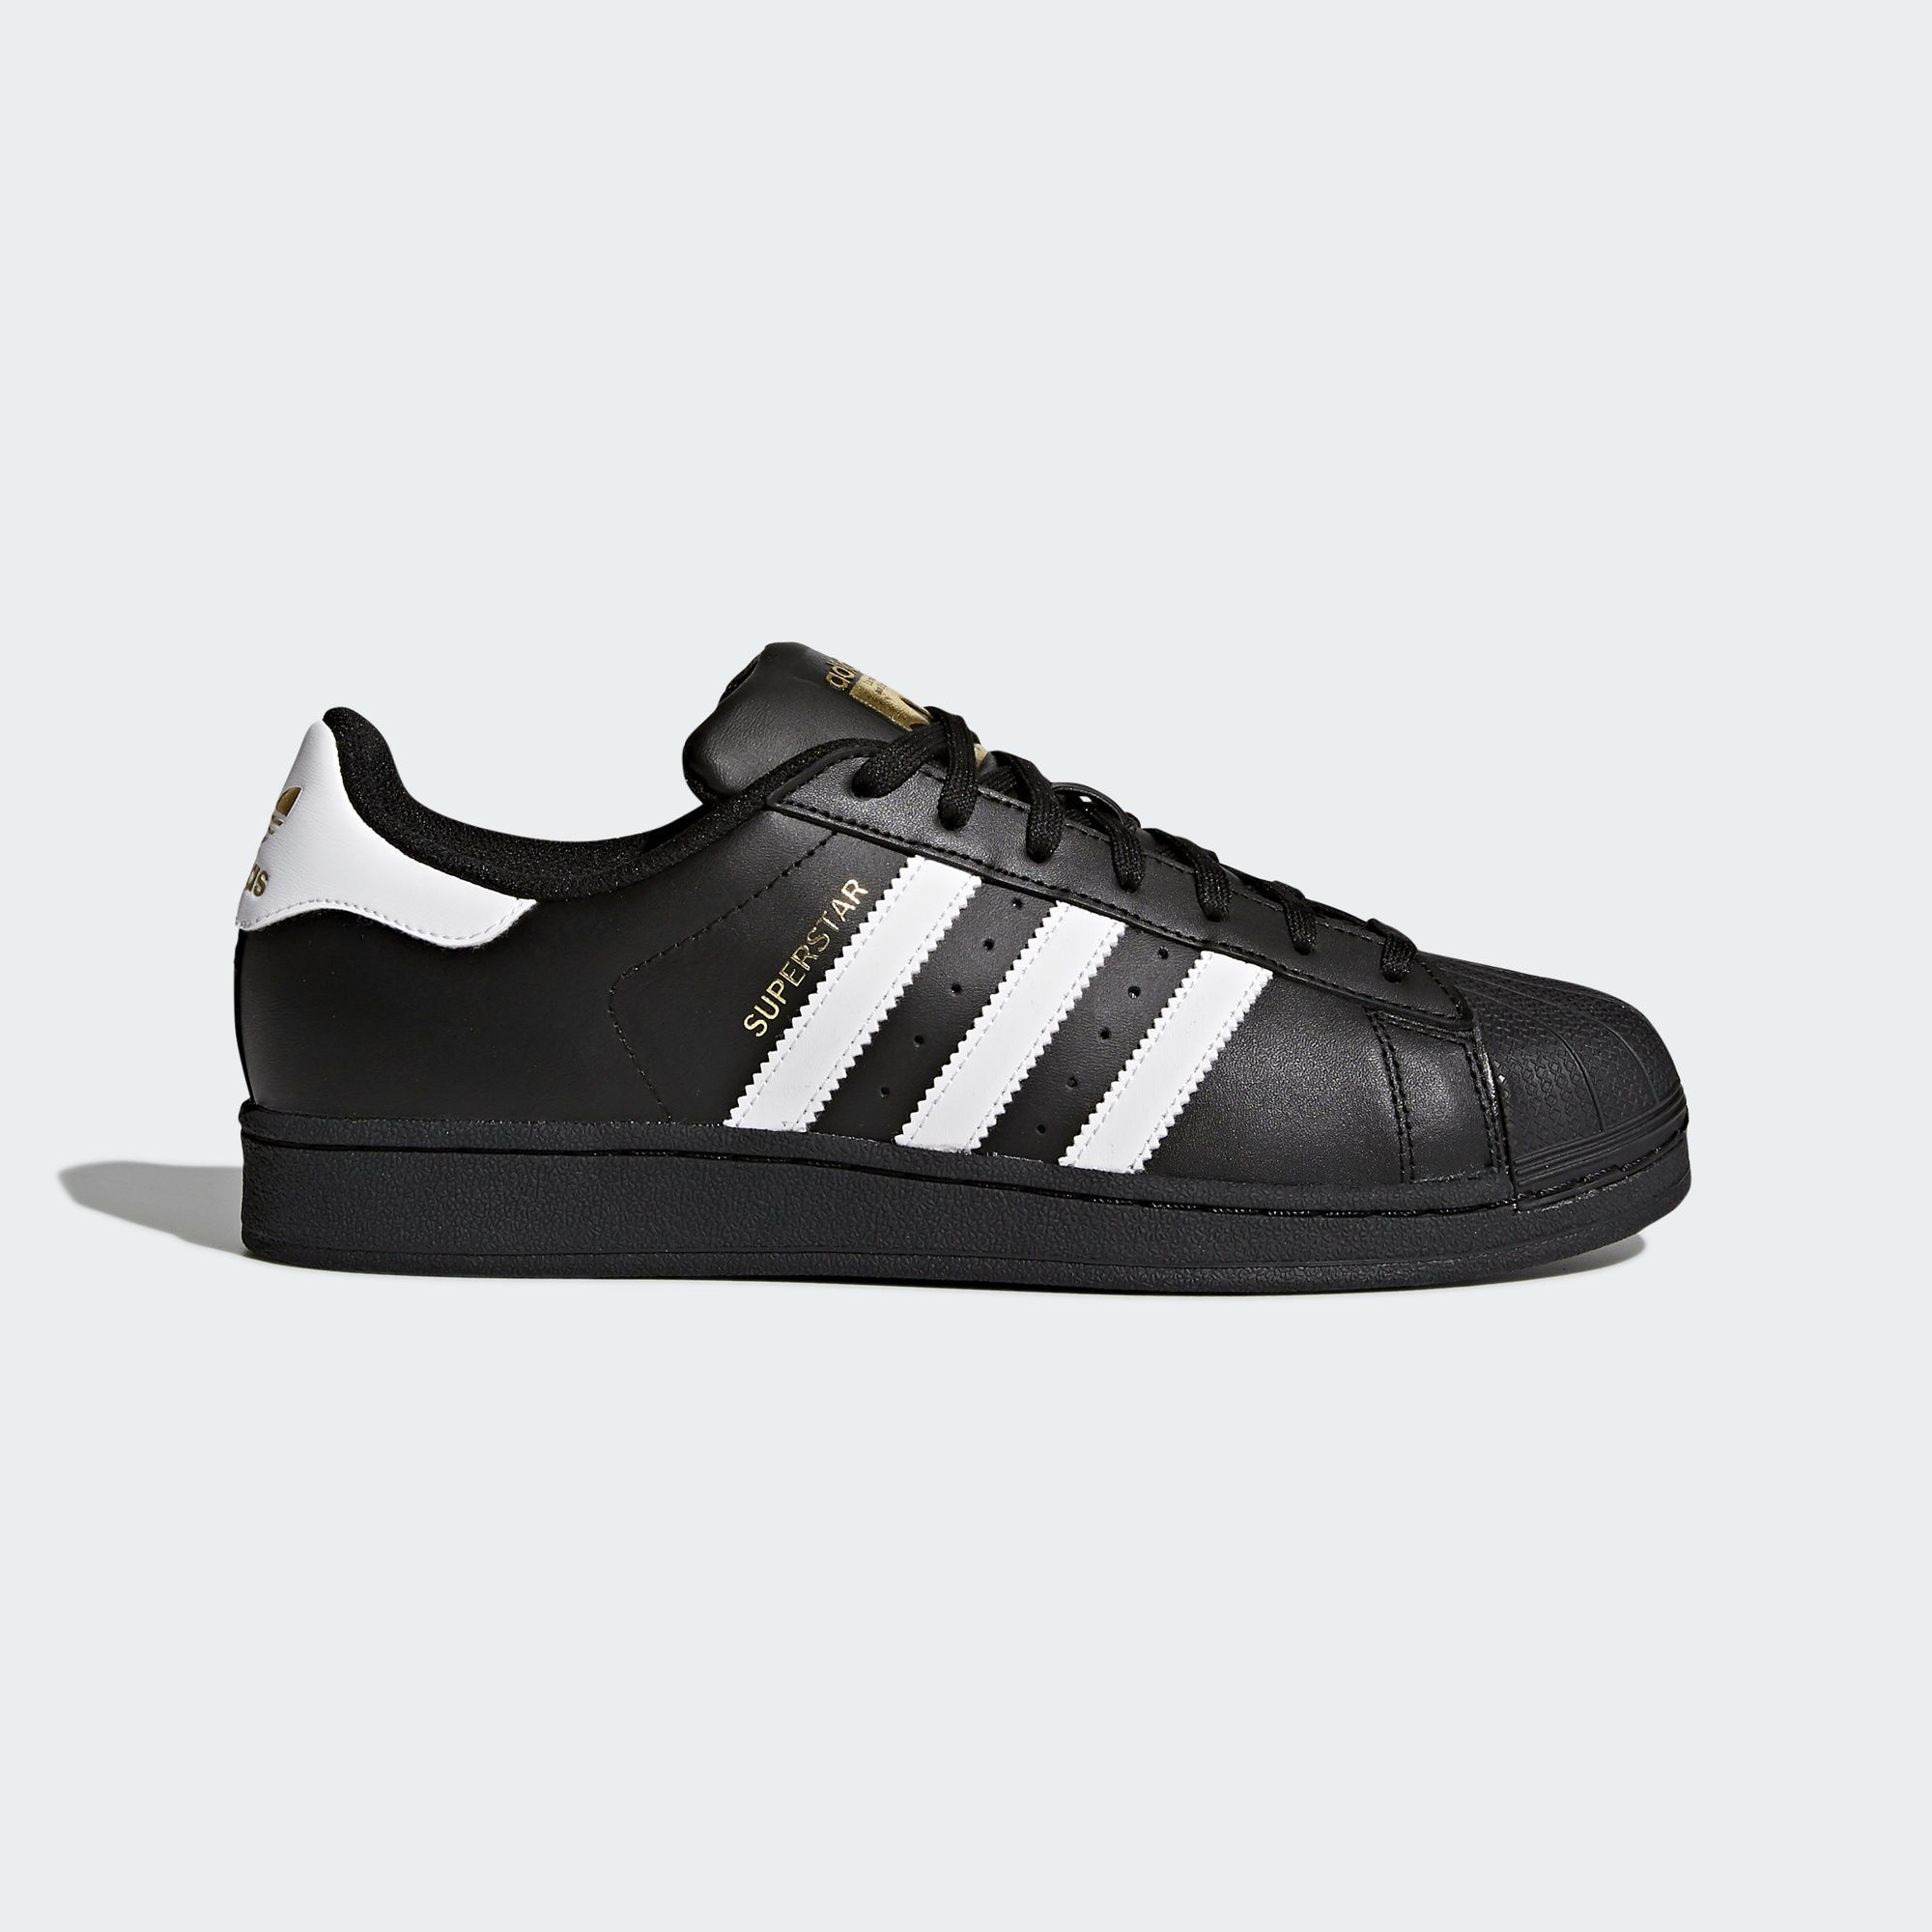 dañar ballena Satisfacer  Shop the Superstar Foundation Shoes - Black at adidas.com/us! See all the  styles and colors of S… | Adidas superstar black, Adidas shoes superstar, Adidas  superstar